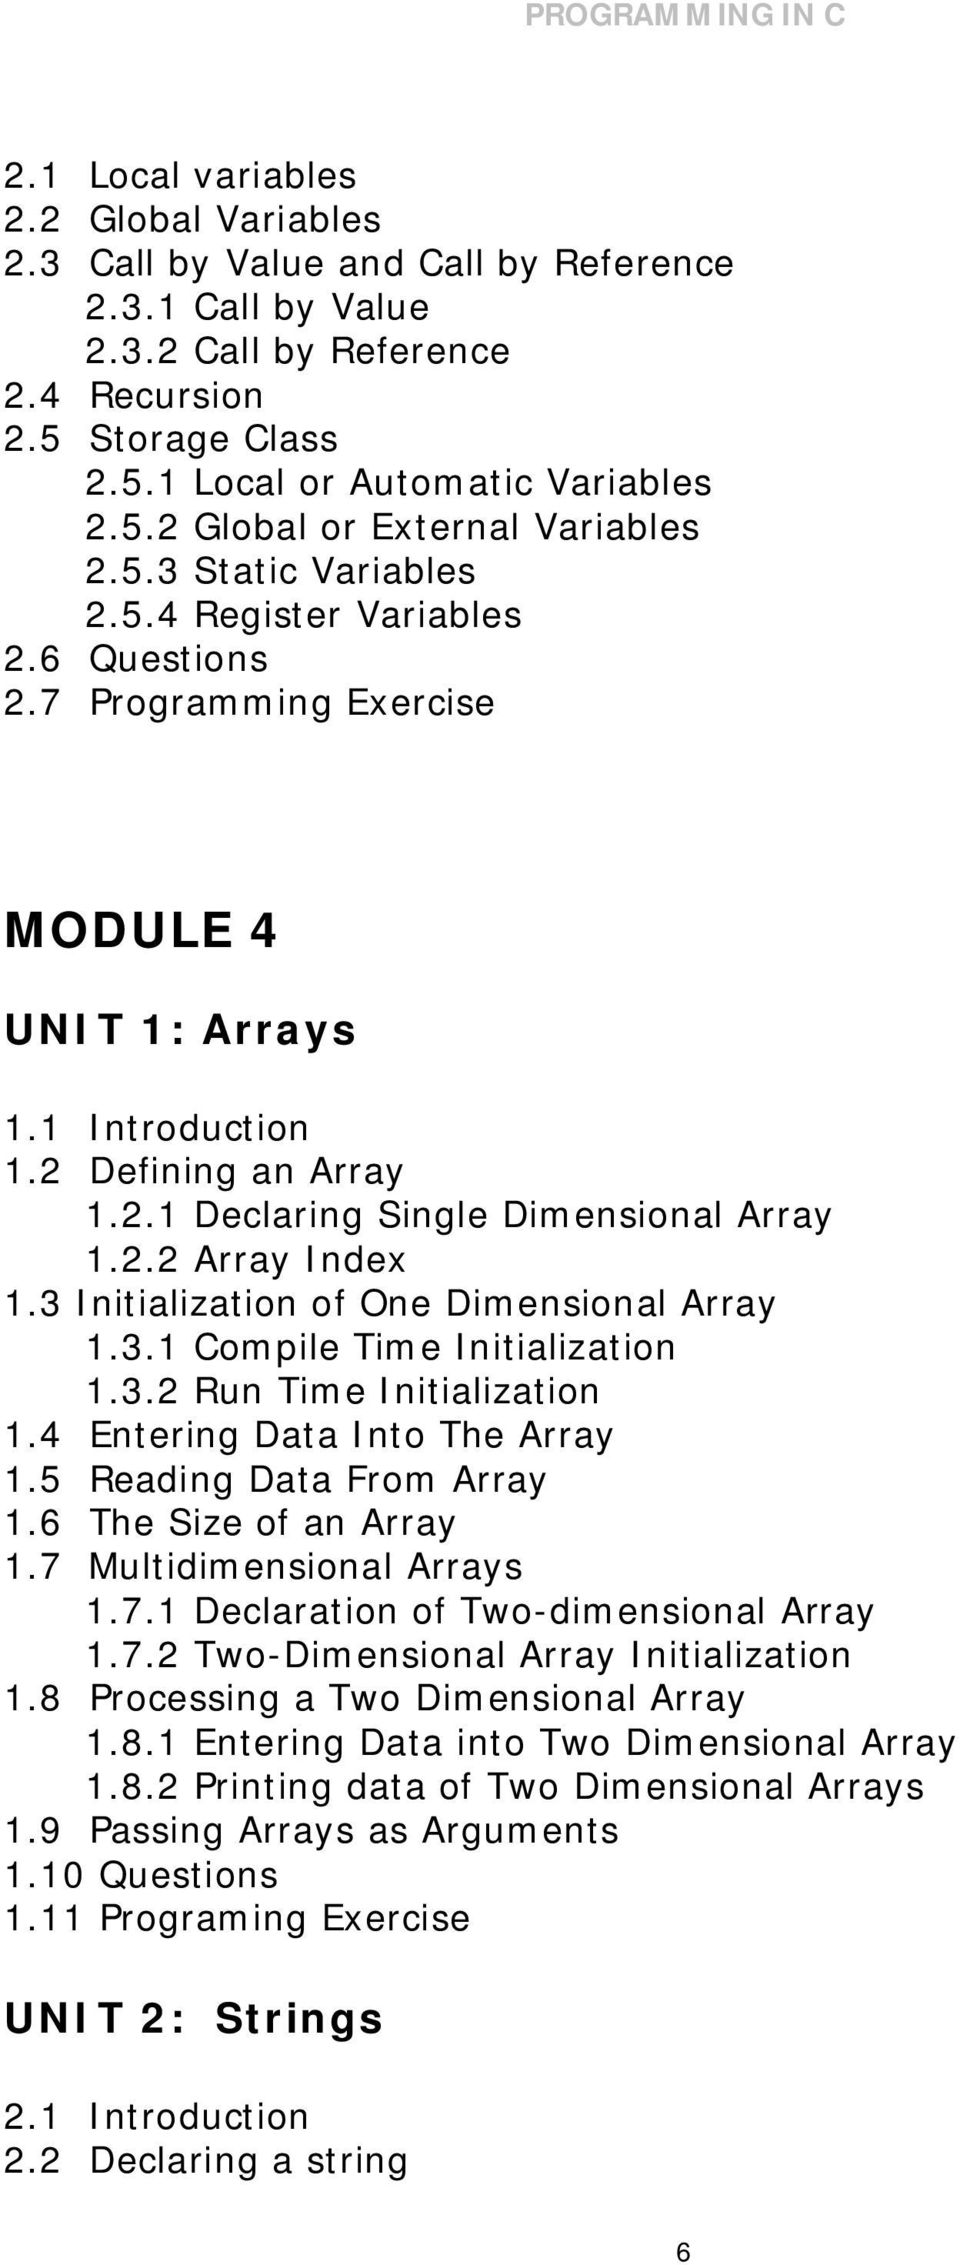 3 Initialization of One Dimensional Array 1.3.1 Compile Time Initialization 1.3.2 Run Time Initialization 1.4 Entering Data Into The Array 1.5 Reading Data From Array 1.6 The Size of an Array 1.